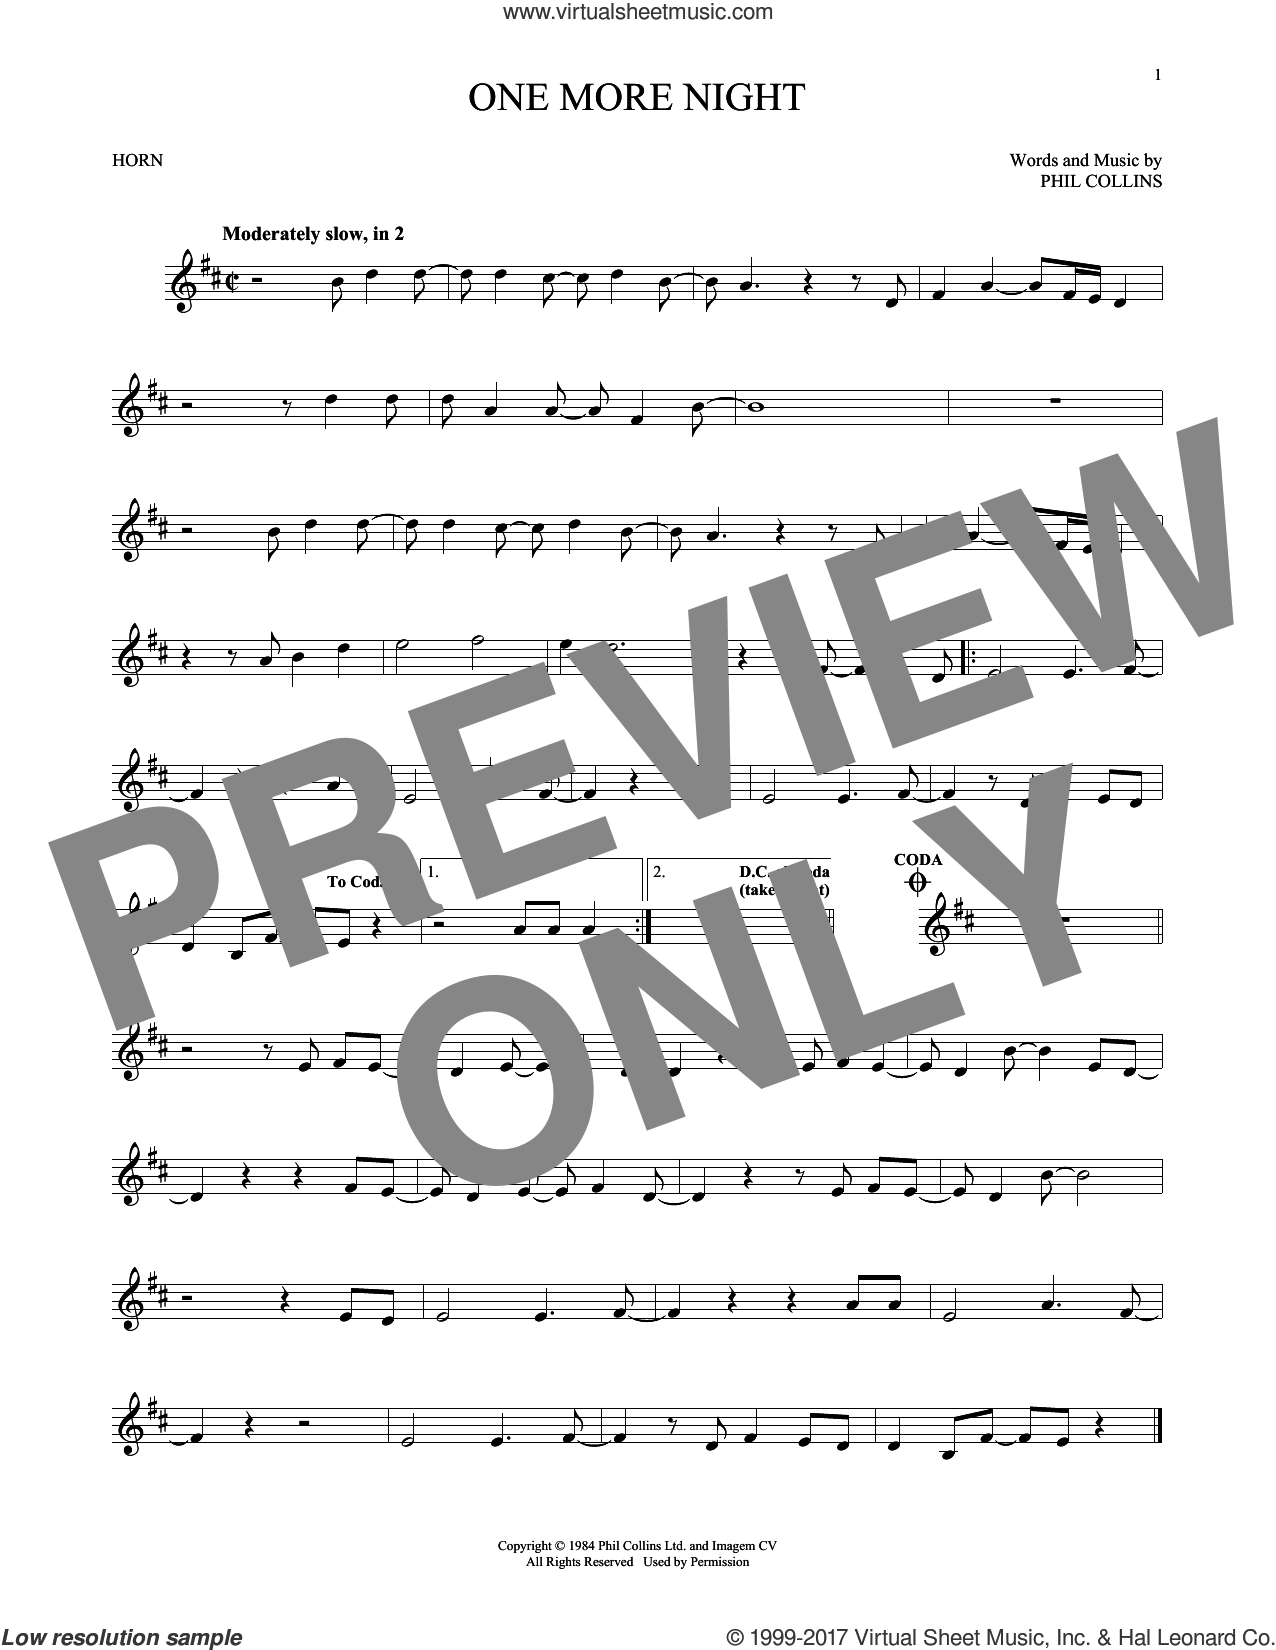 One More Night sheet music for horn solo by Phil Collins, intermediate skill level